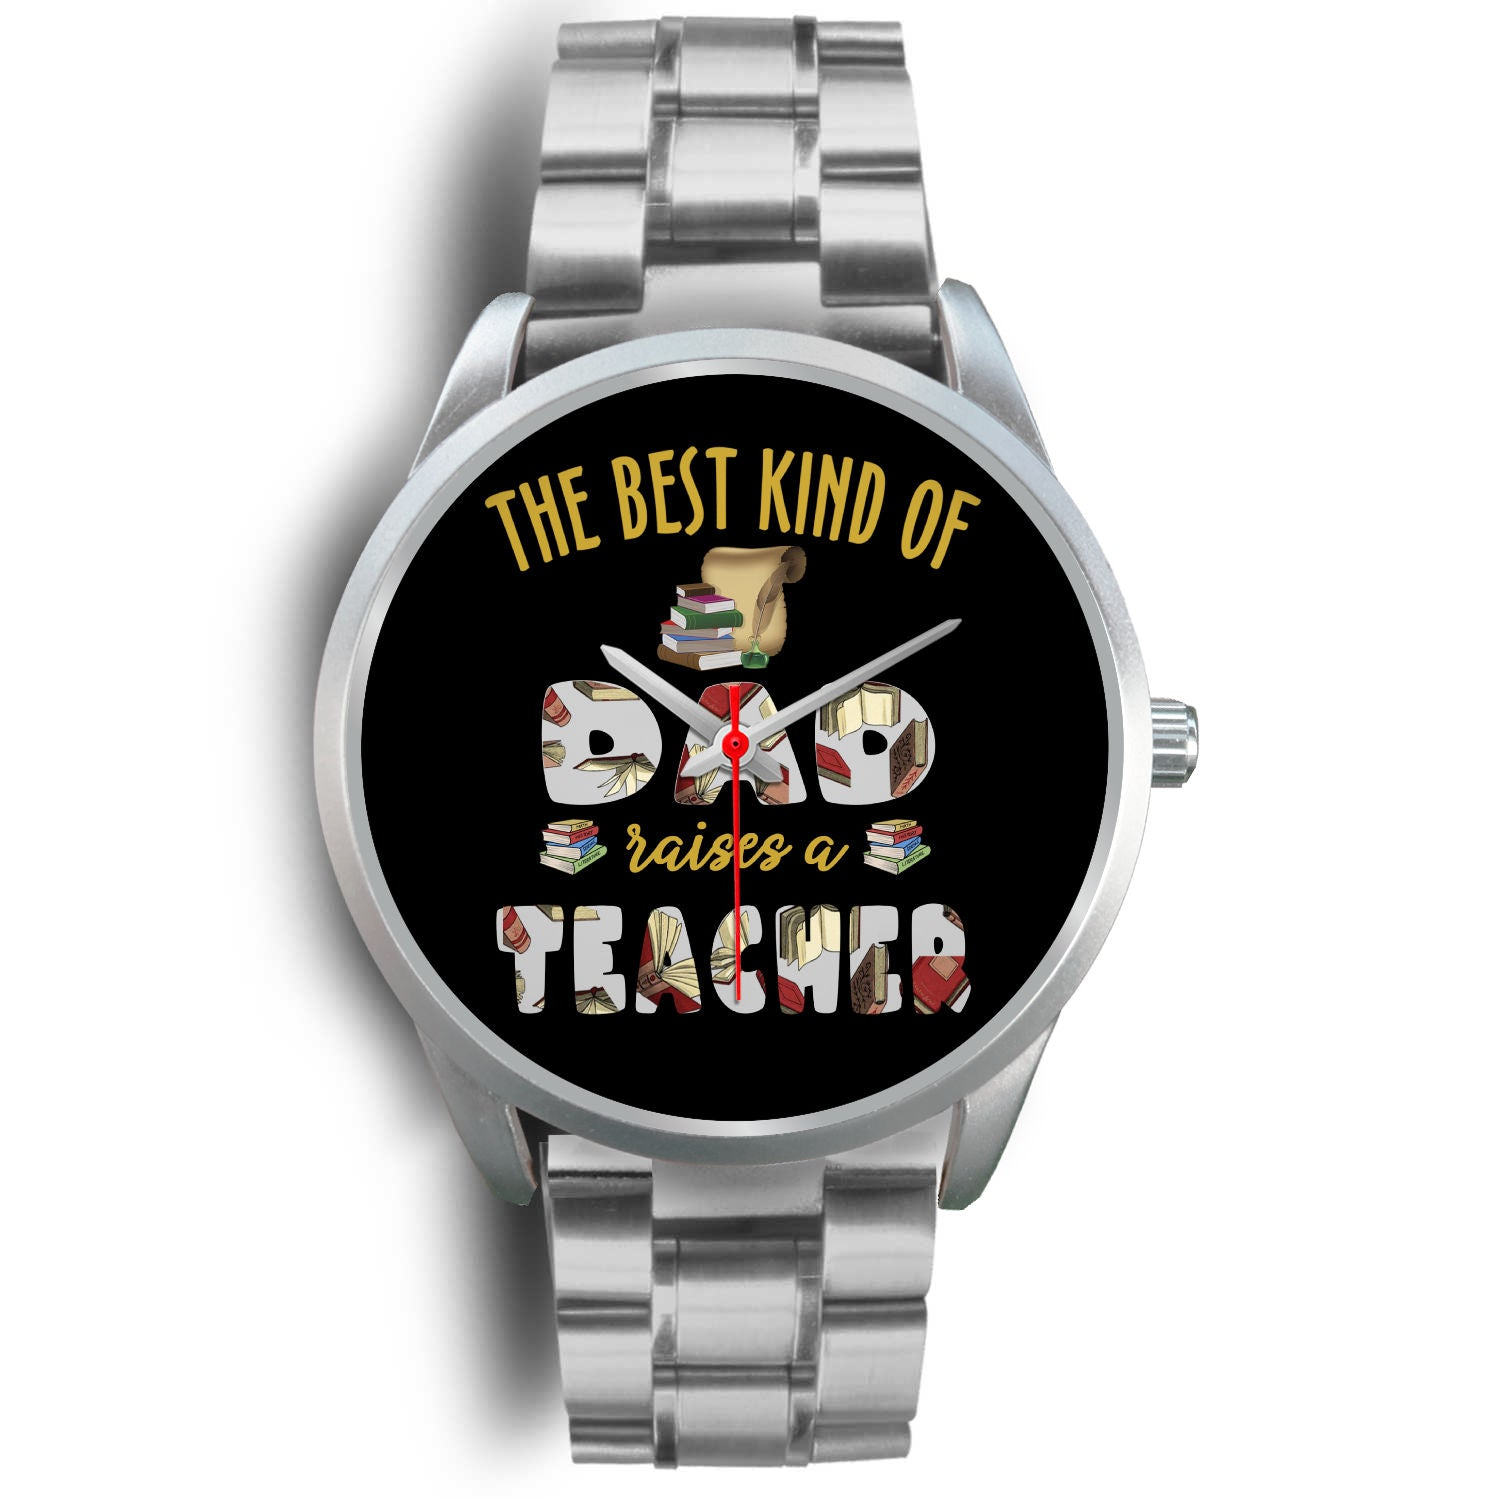 VIRA Silver Stainless Steel Watch For Awesome Teachers & Dads - Best Gift Ever